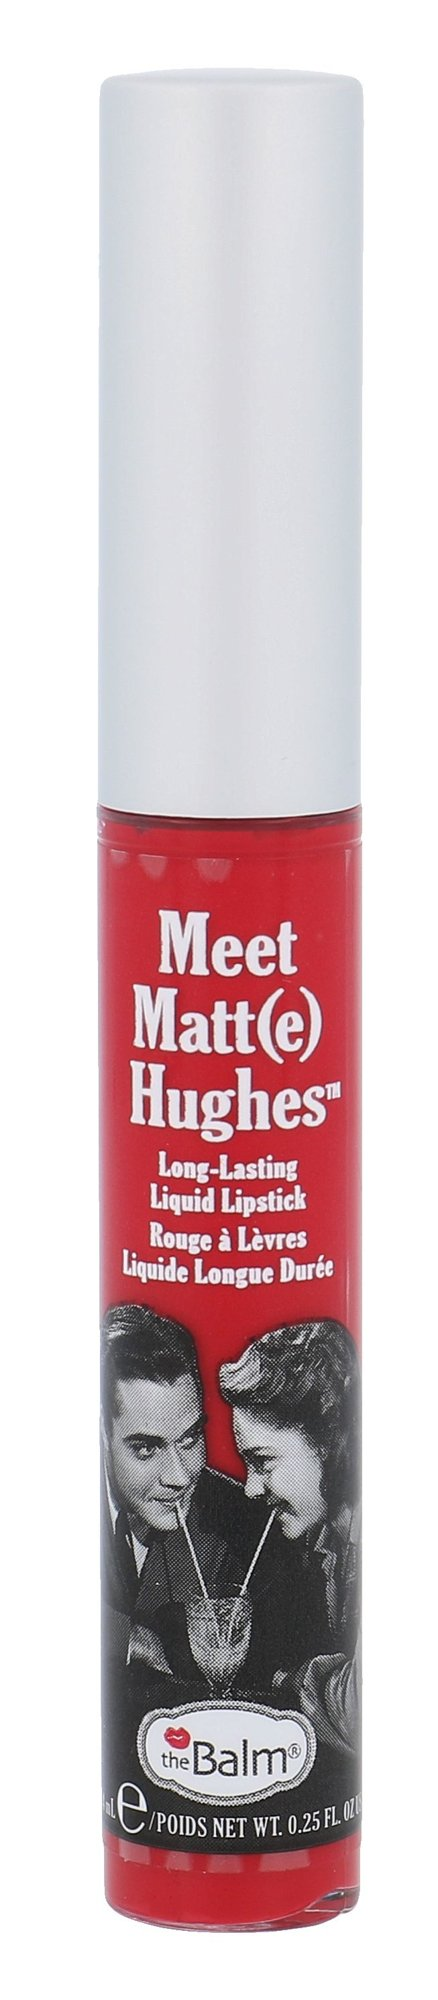 TheBalm Meet Matt(e) Hughes Cosmetic 7,4ml Devoted